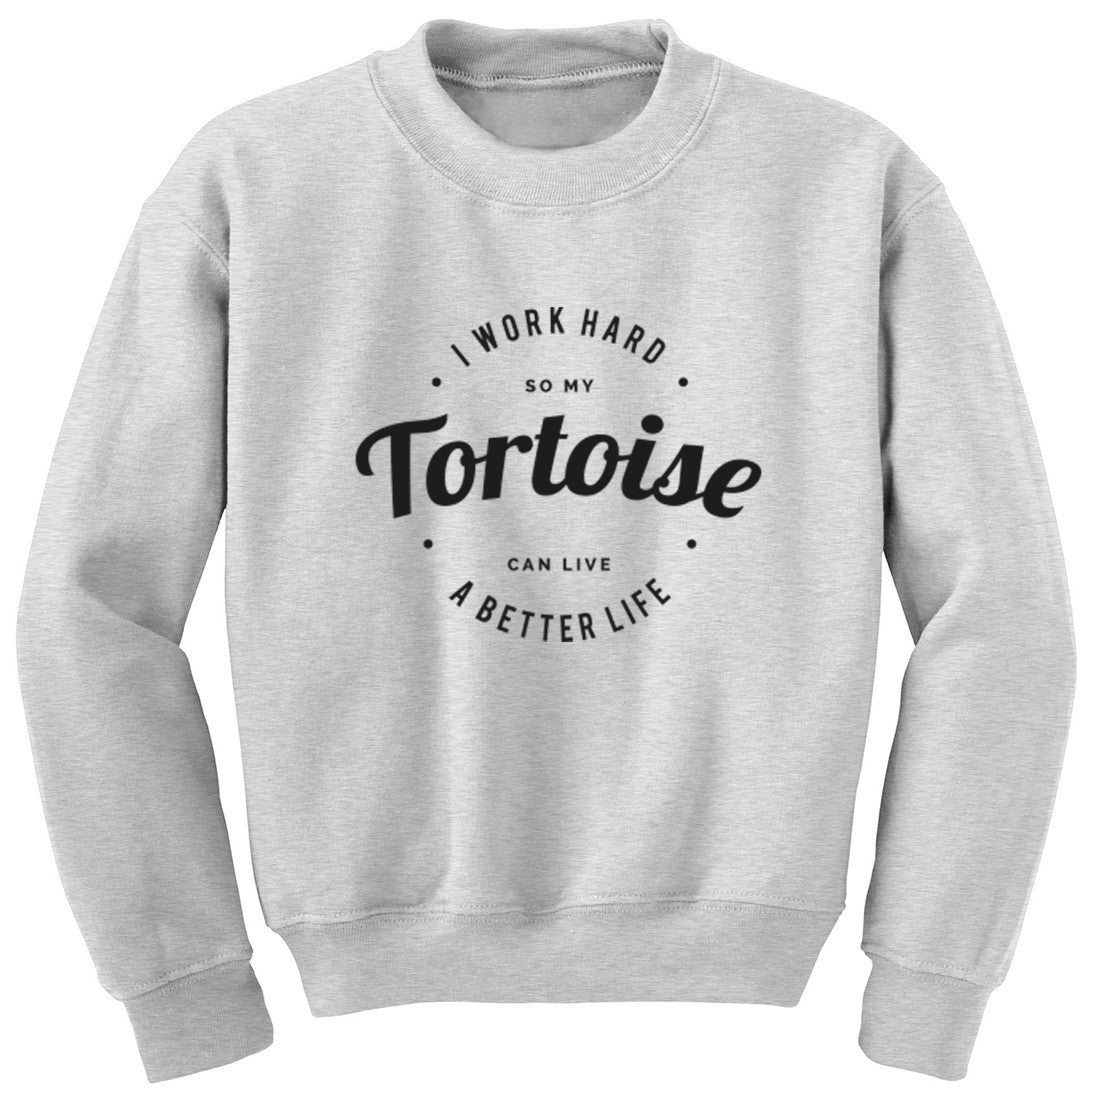 I Work Hard So My Tortoise Can Live A Better Life Unisex Jumper K0437 - Illustrated Identity Ltd.